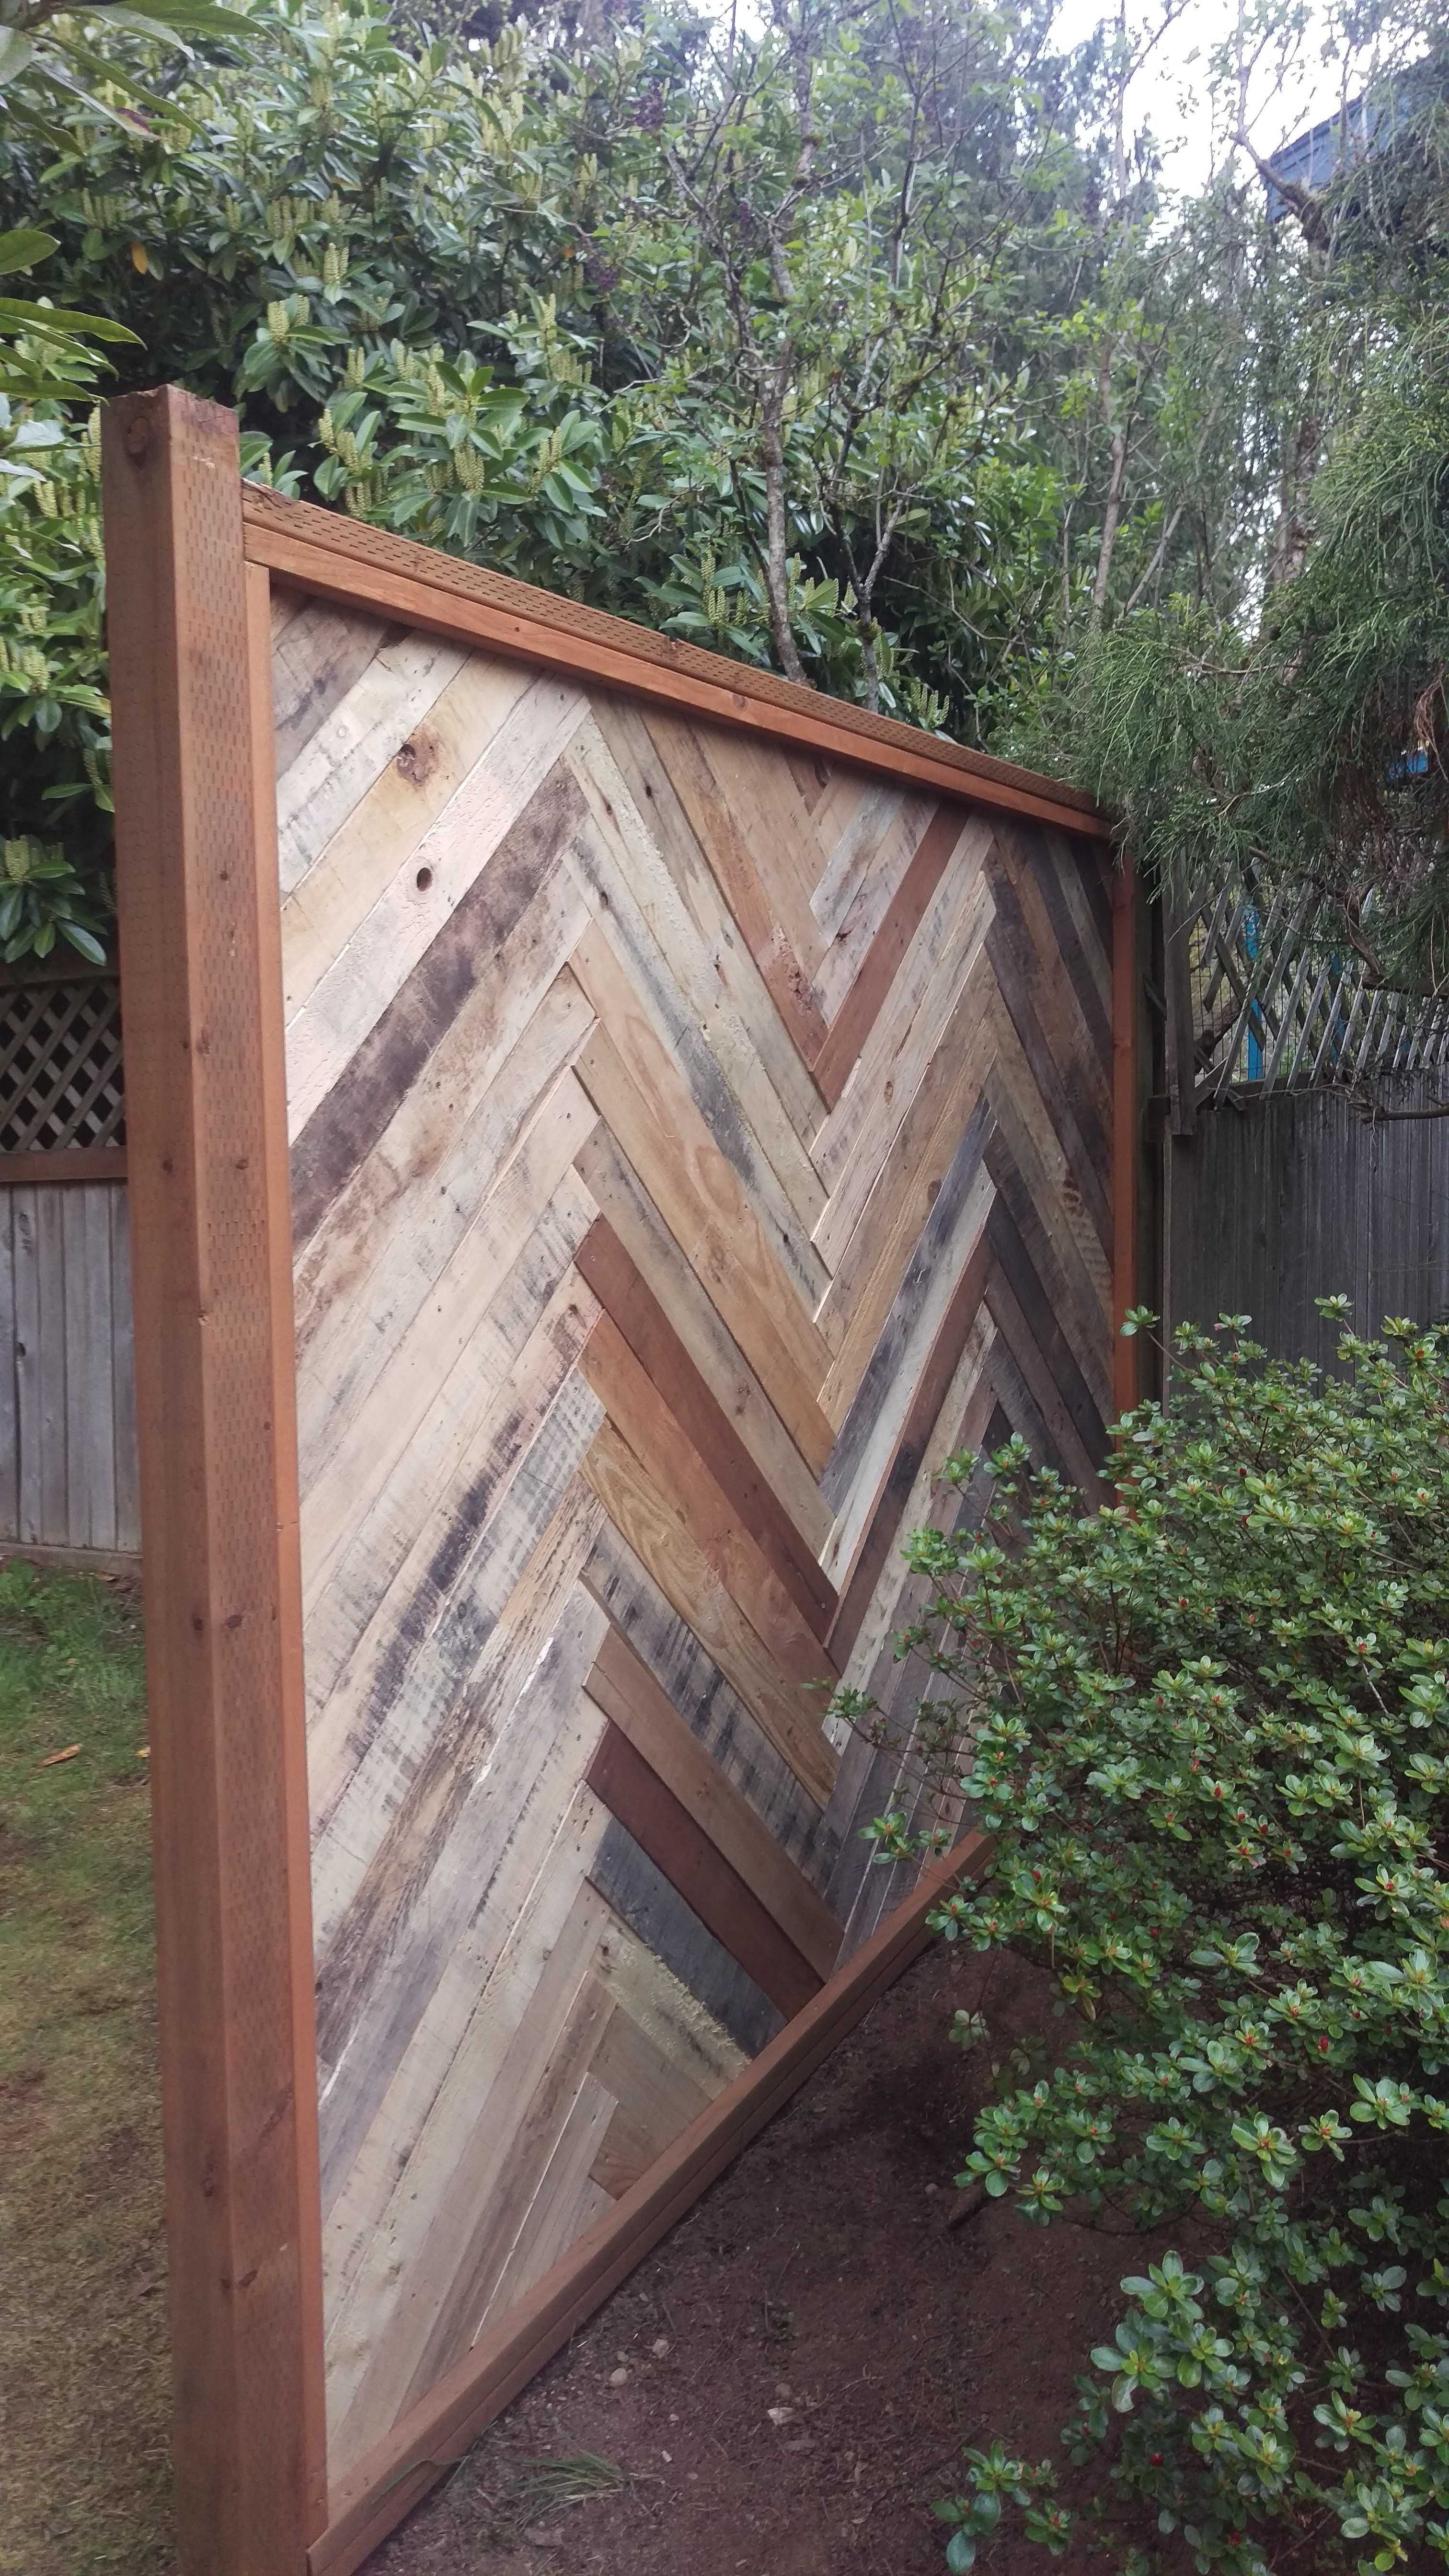 Backyard Fence Made with Repurposed Pallets | Pinterest | Muebles de ...